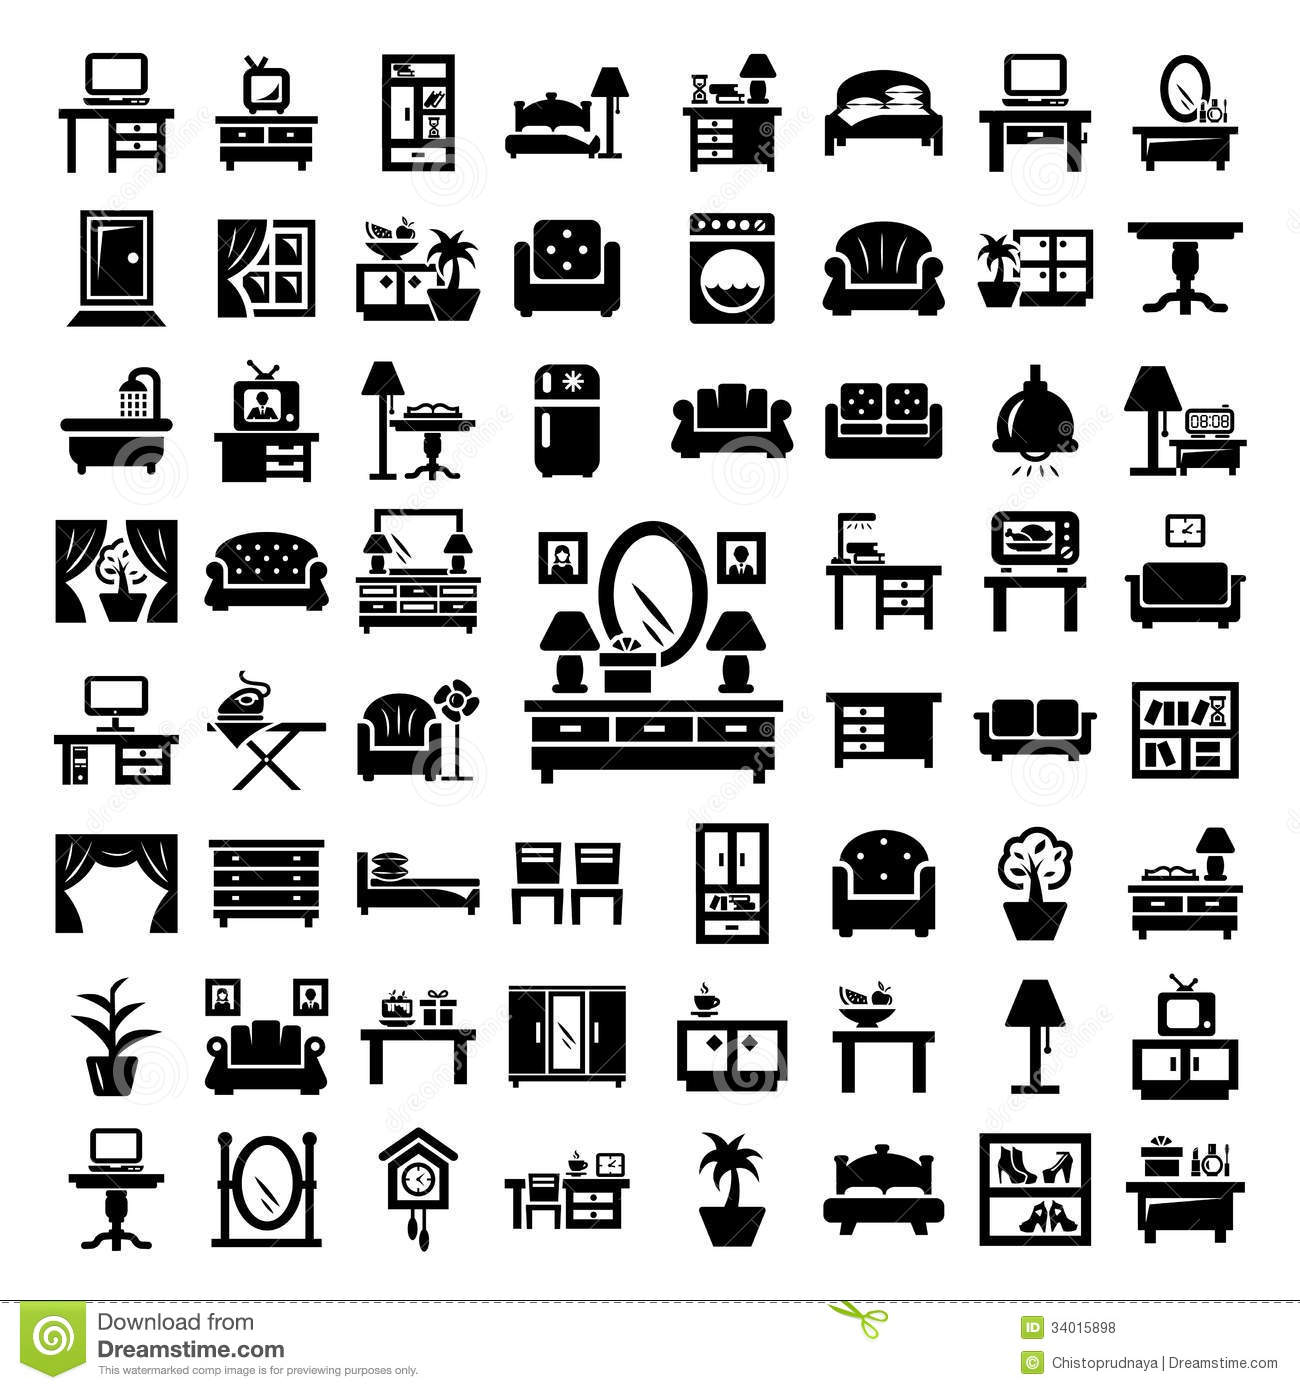 Big Furniture Icons Set Royalty Free Stock Photos - Image: 34015898